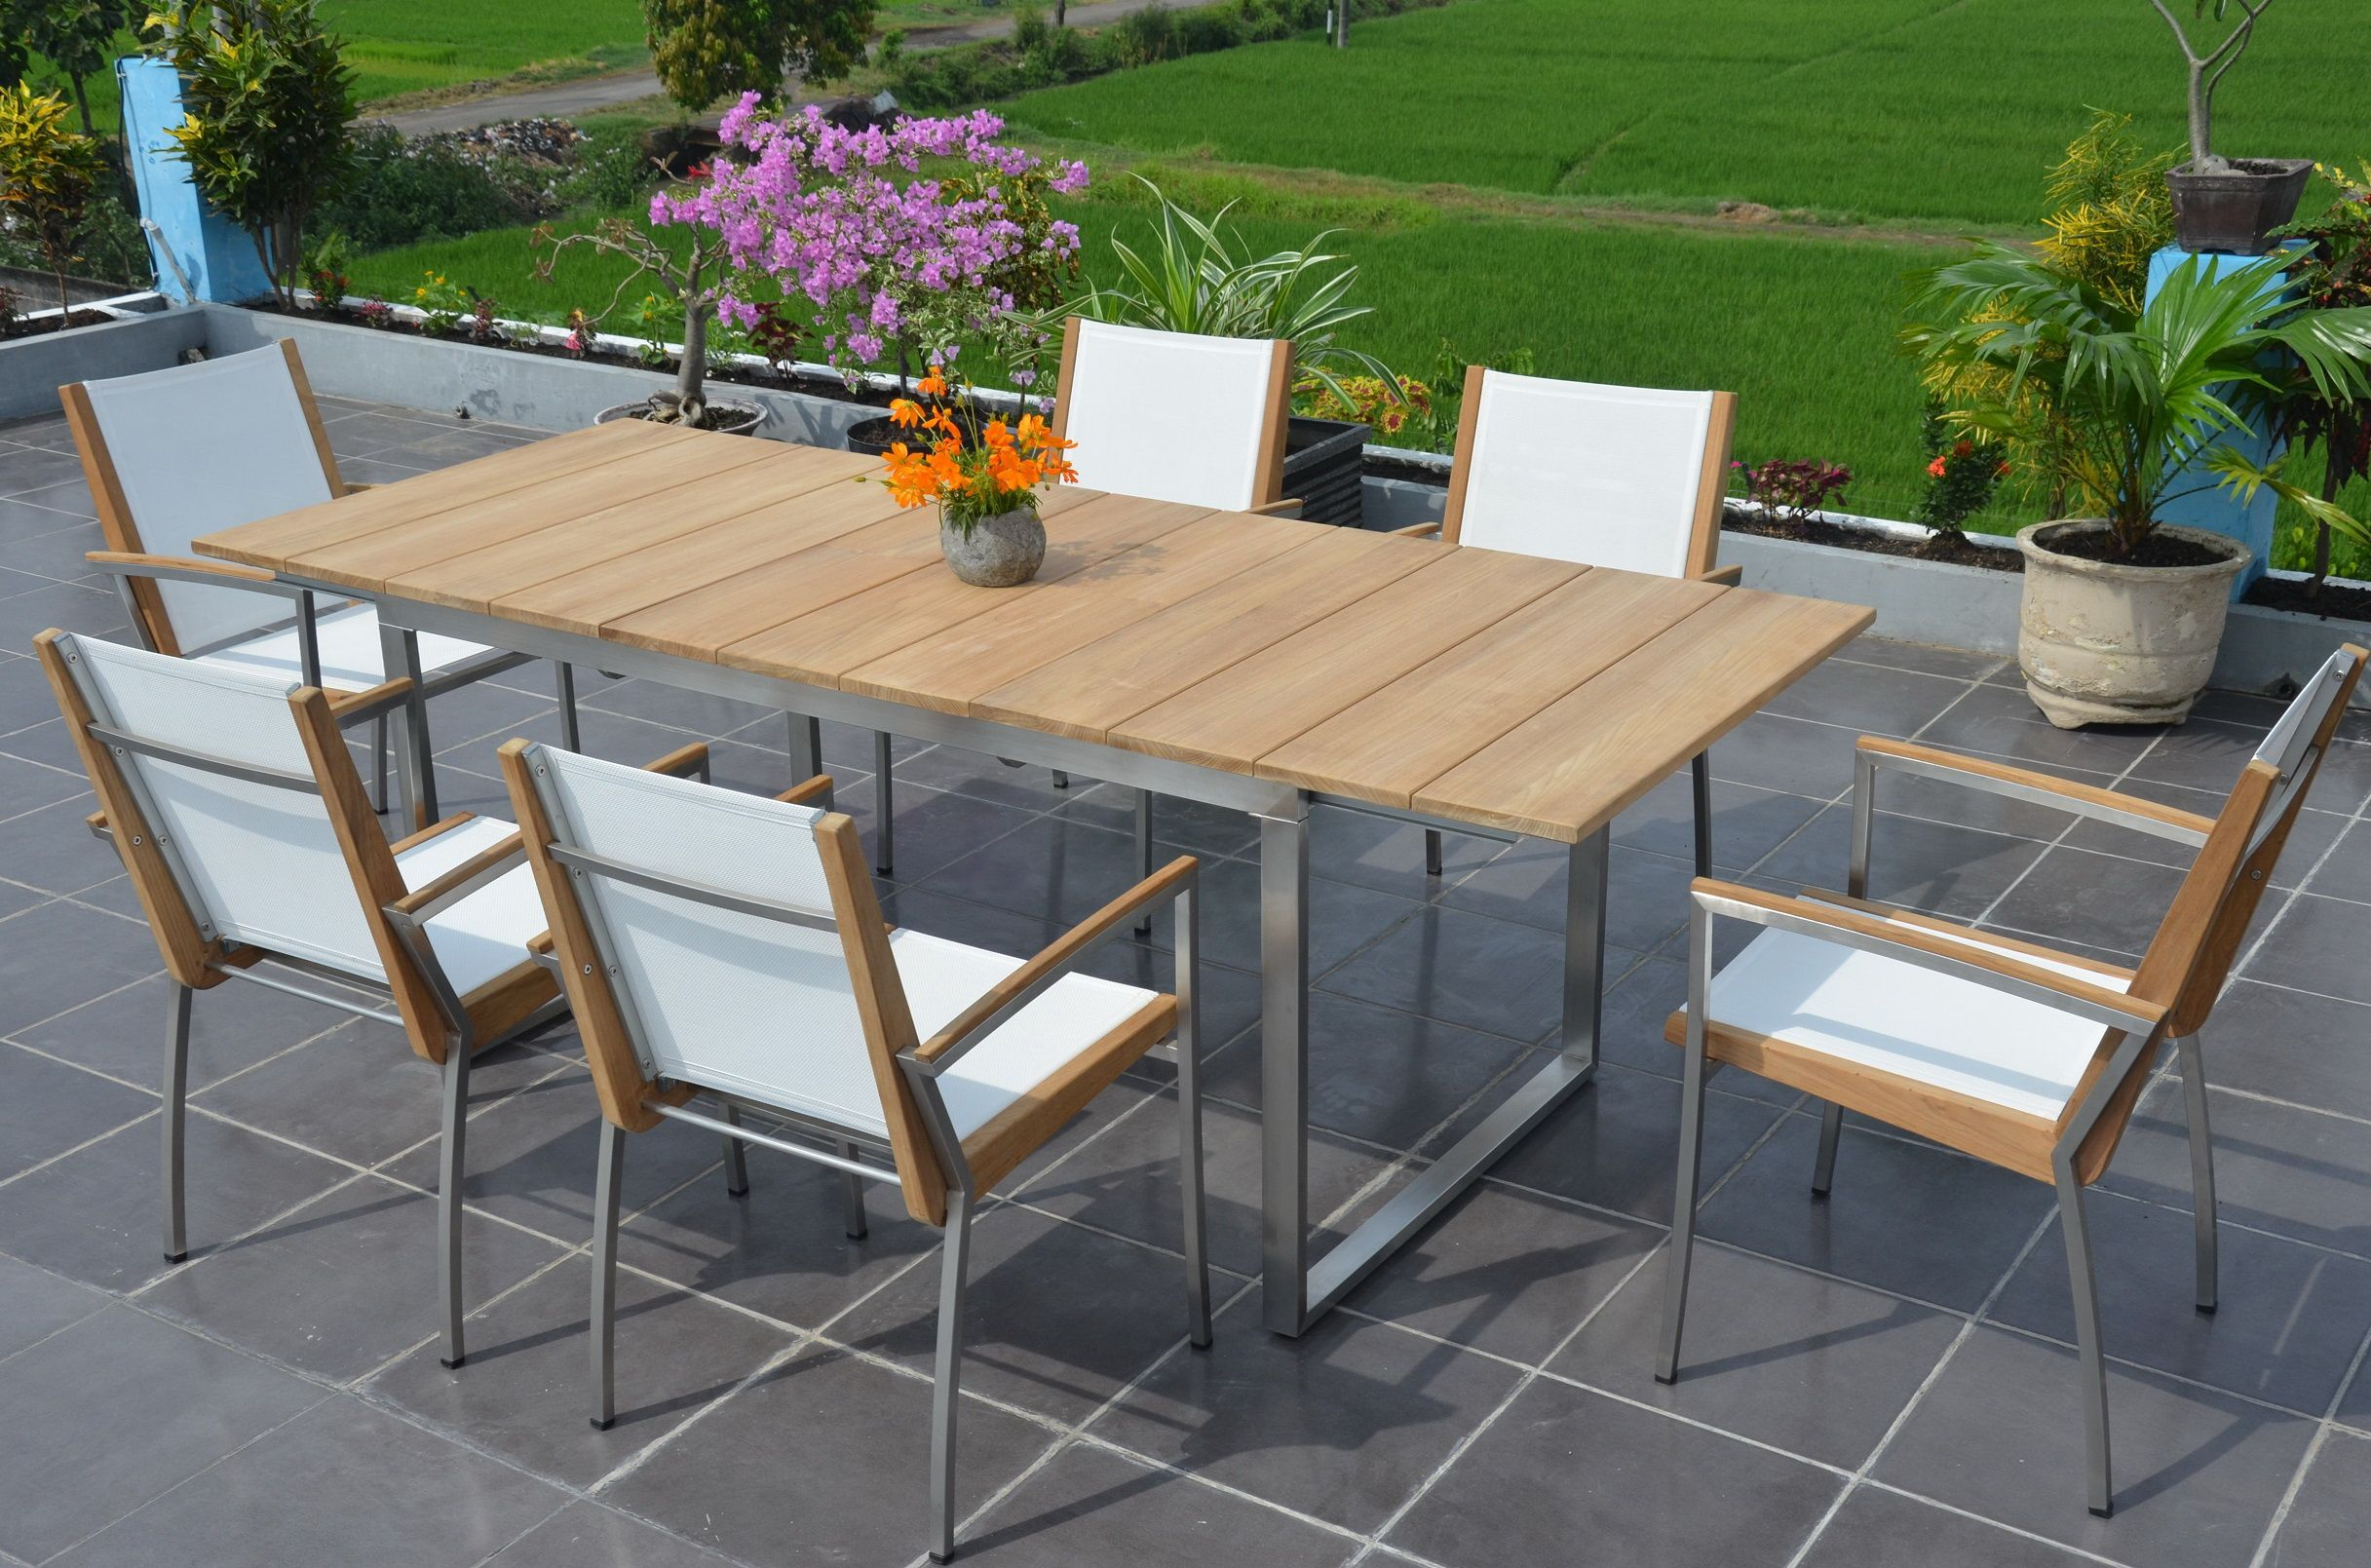 Uv Light Mould And Mildew Resistant All Weather Teak Strong Premium Quality Teak Amp Stainless Ste Dining Set Outdoor Furniture Sets Outdoor Dining Table